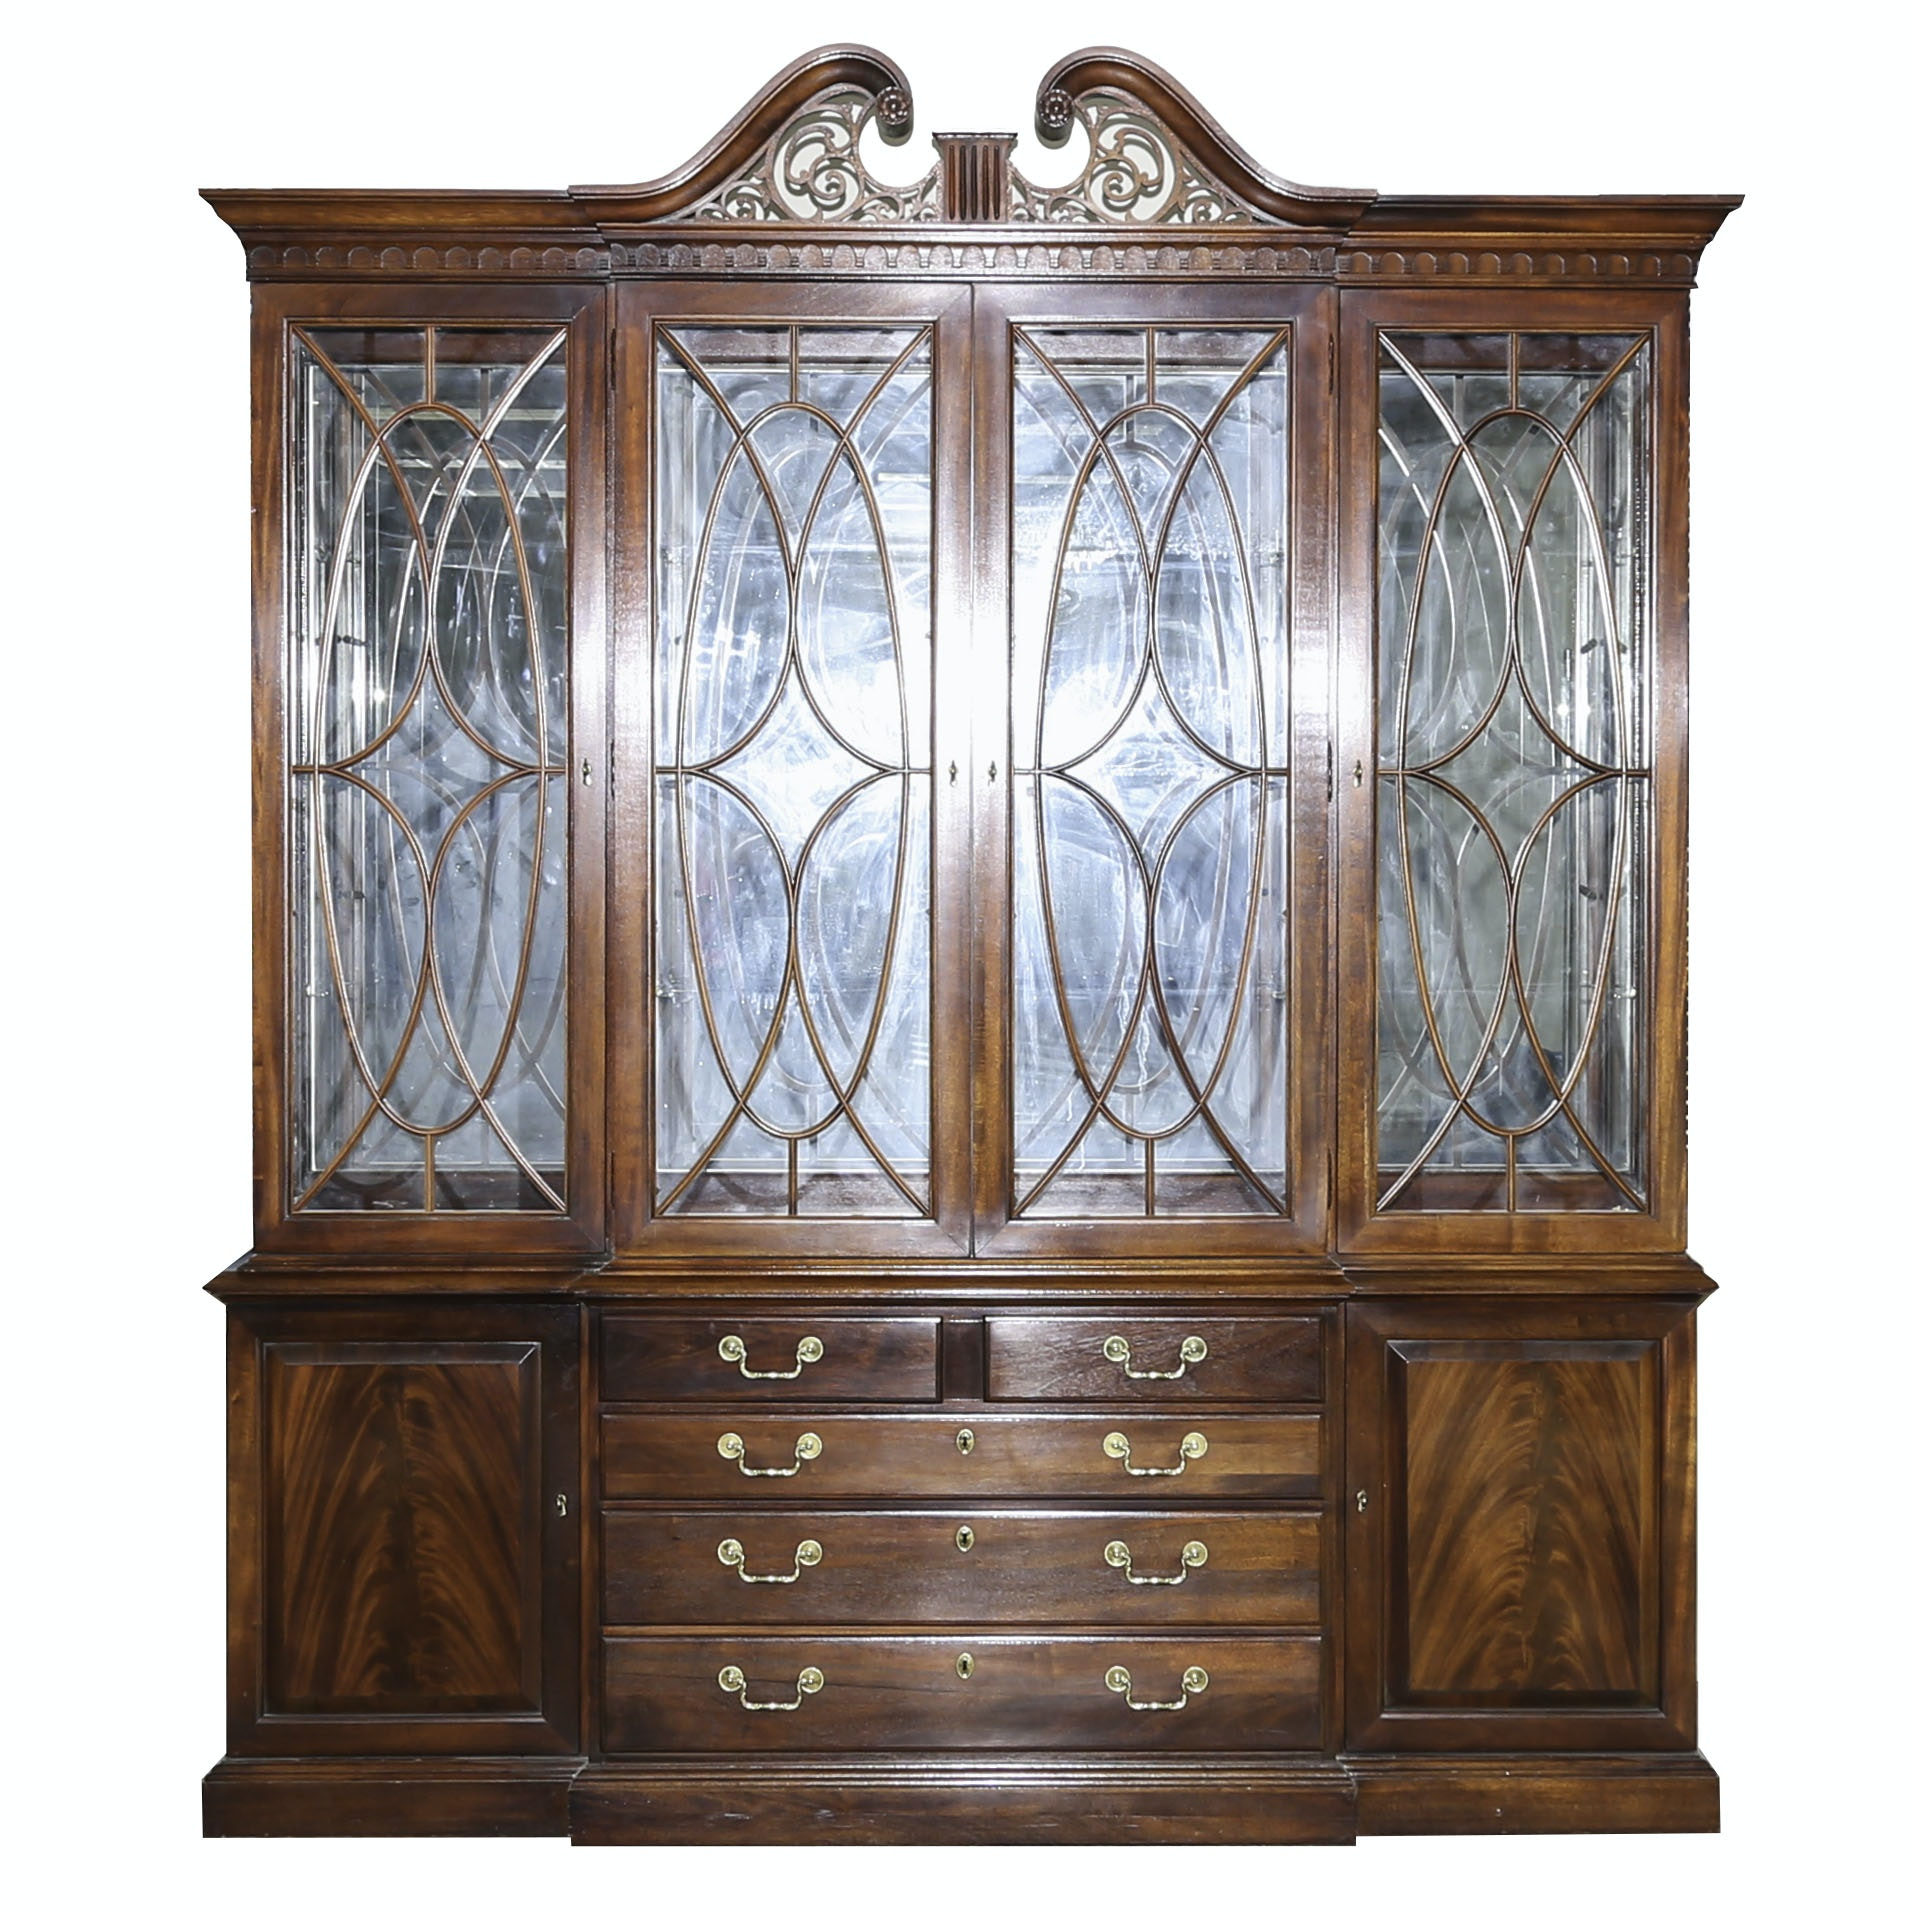 Chippendale Style Breakfront China Cabinet by Thomasville Furniture